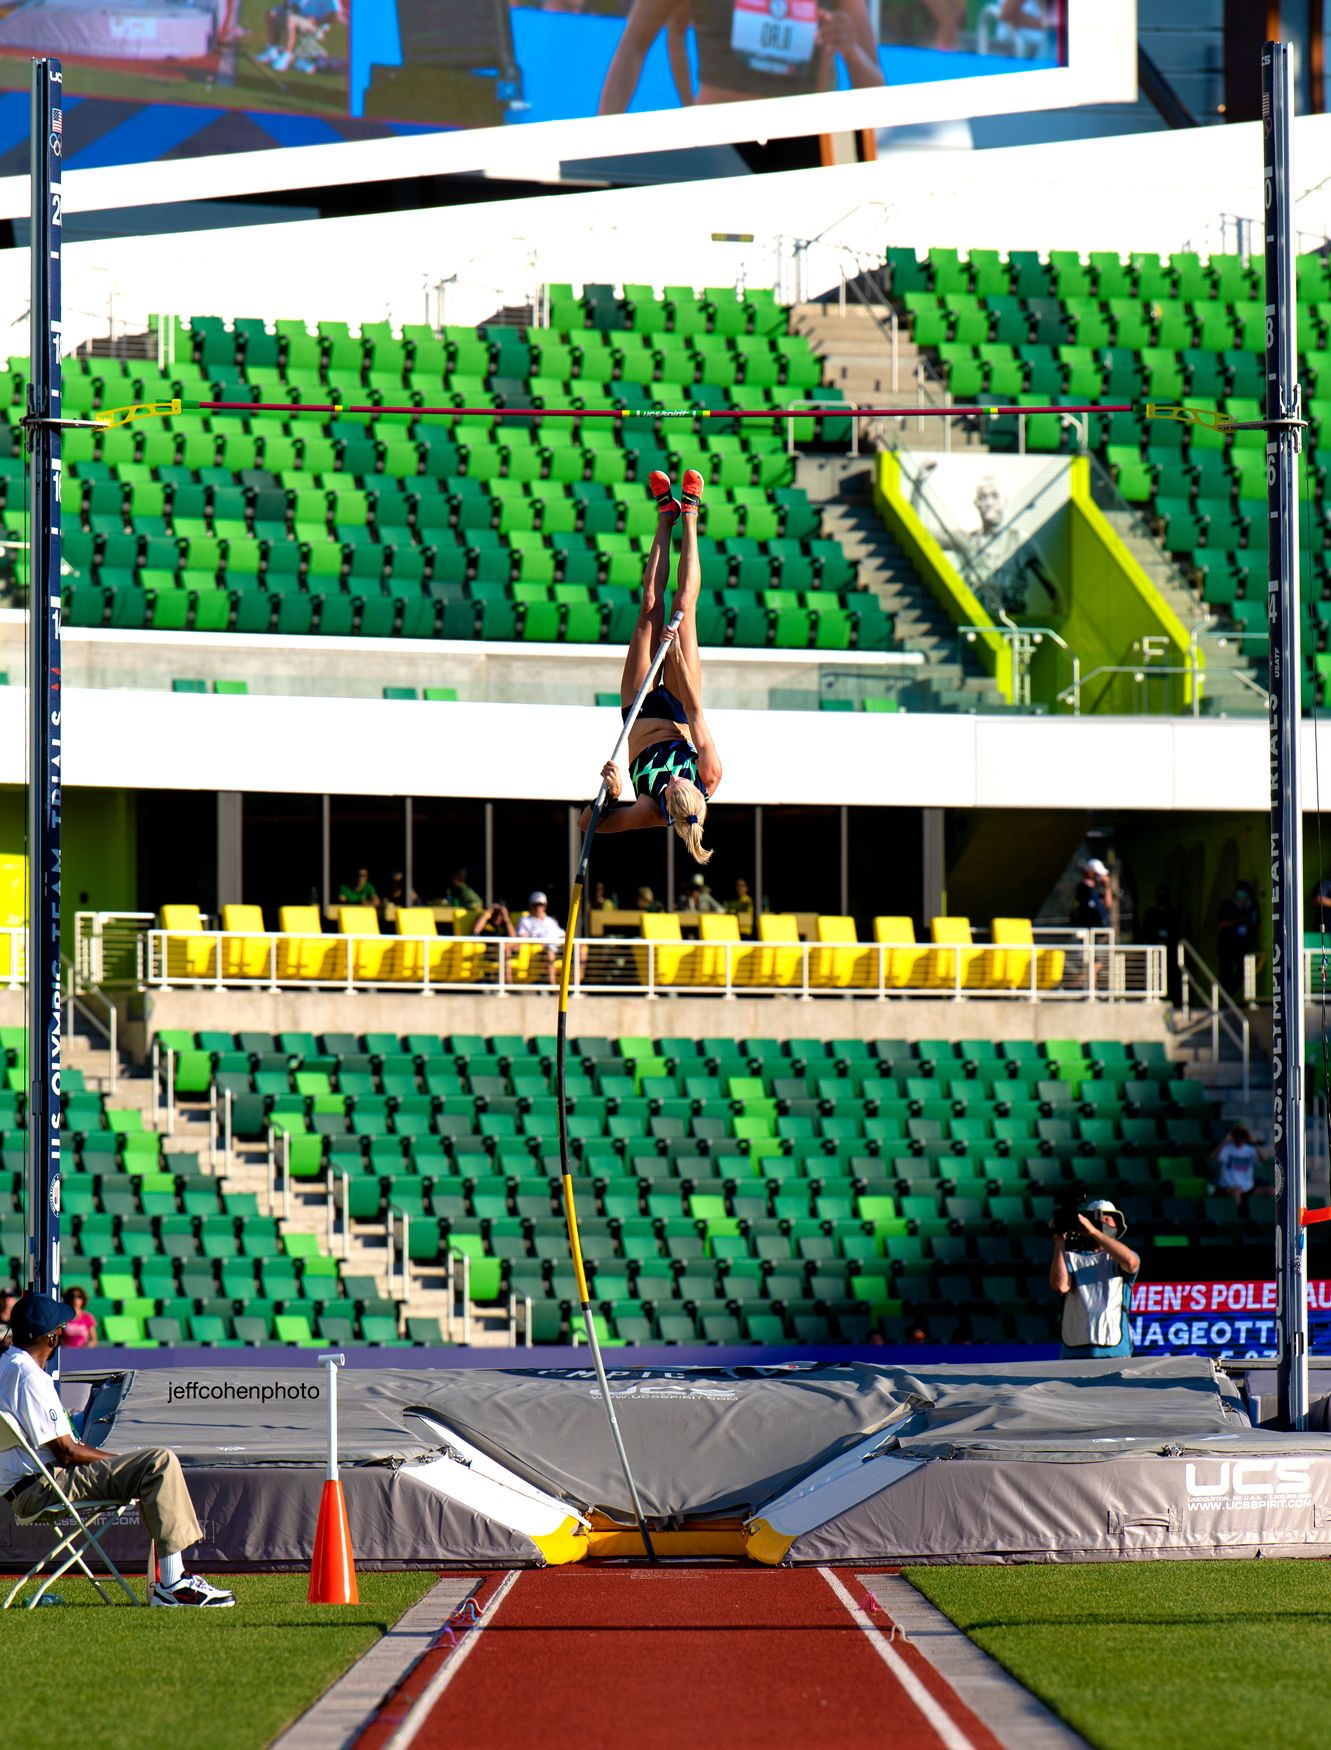 nageotte-pvw-2021-US-Oly-Trials--day-7-1237-jeff-cohen-photo--web.jpg